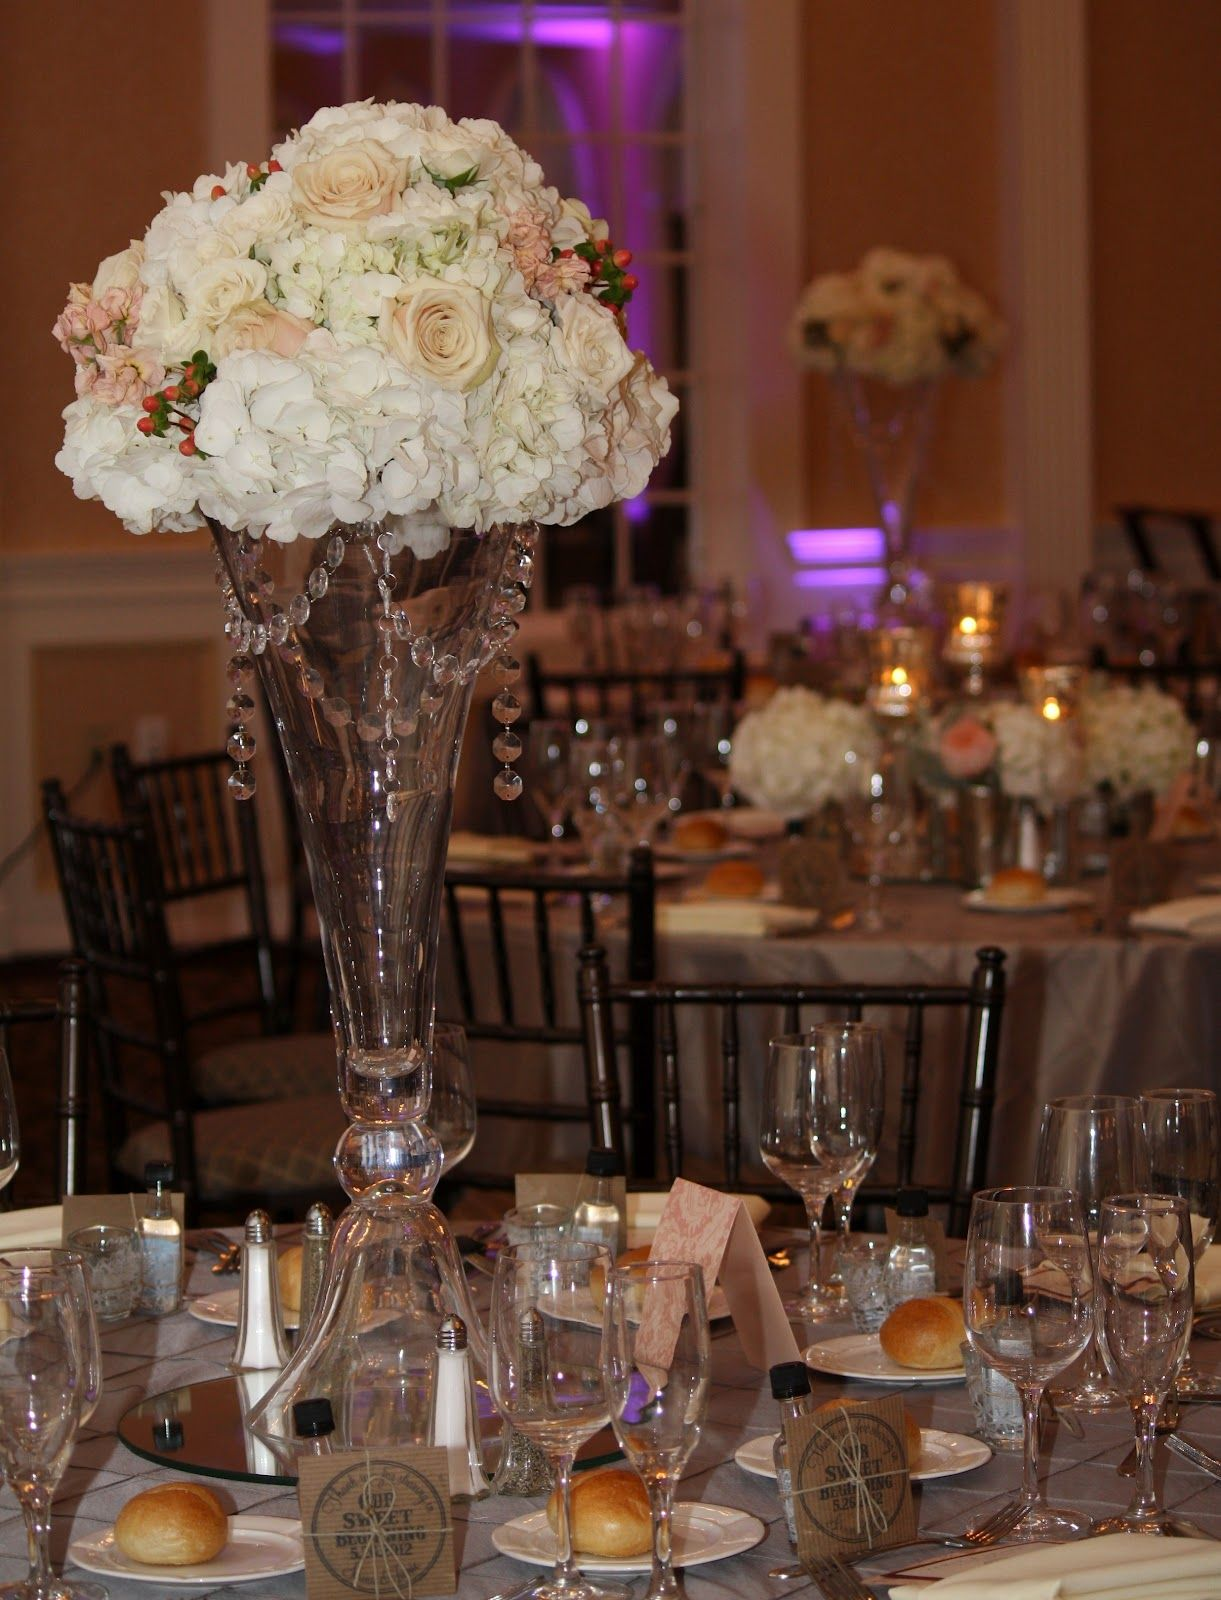 wedding vases Tall Vase Wedding Centerpieces Wedding Reception Table Centerpieces With Amazing Tall Glass Vase